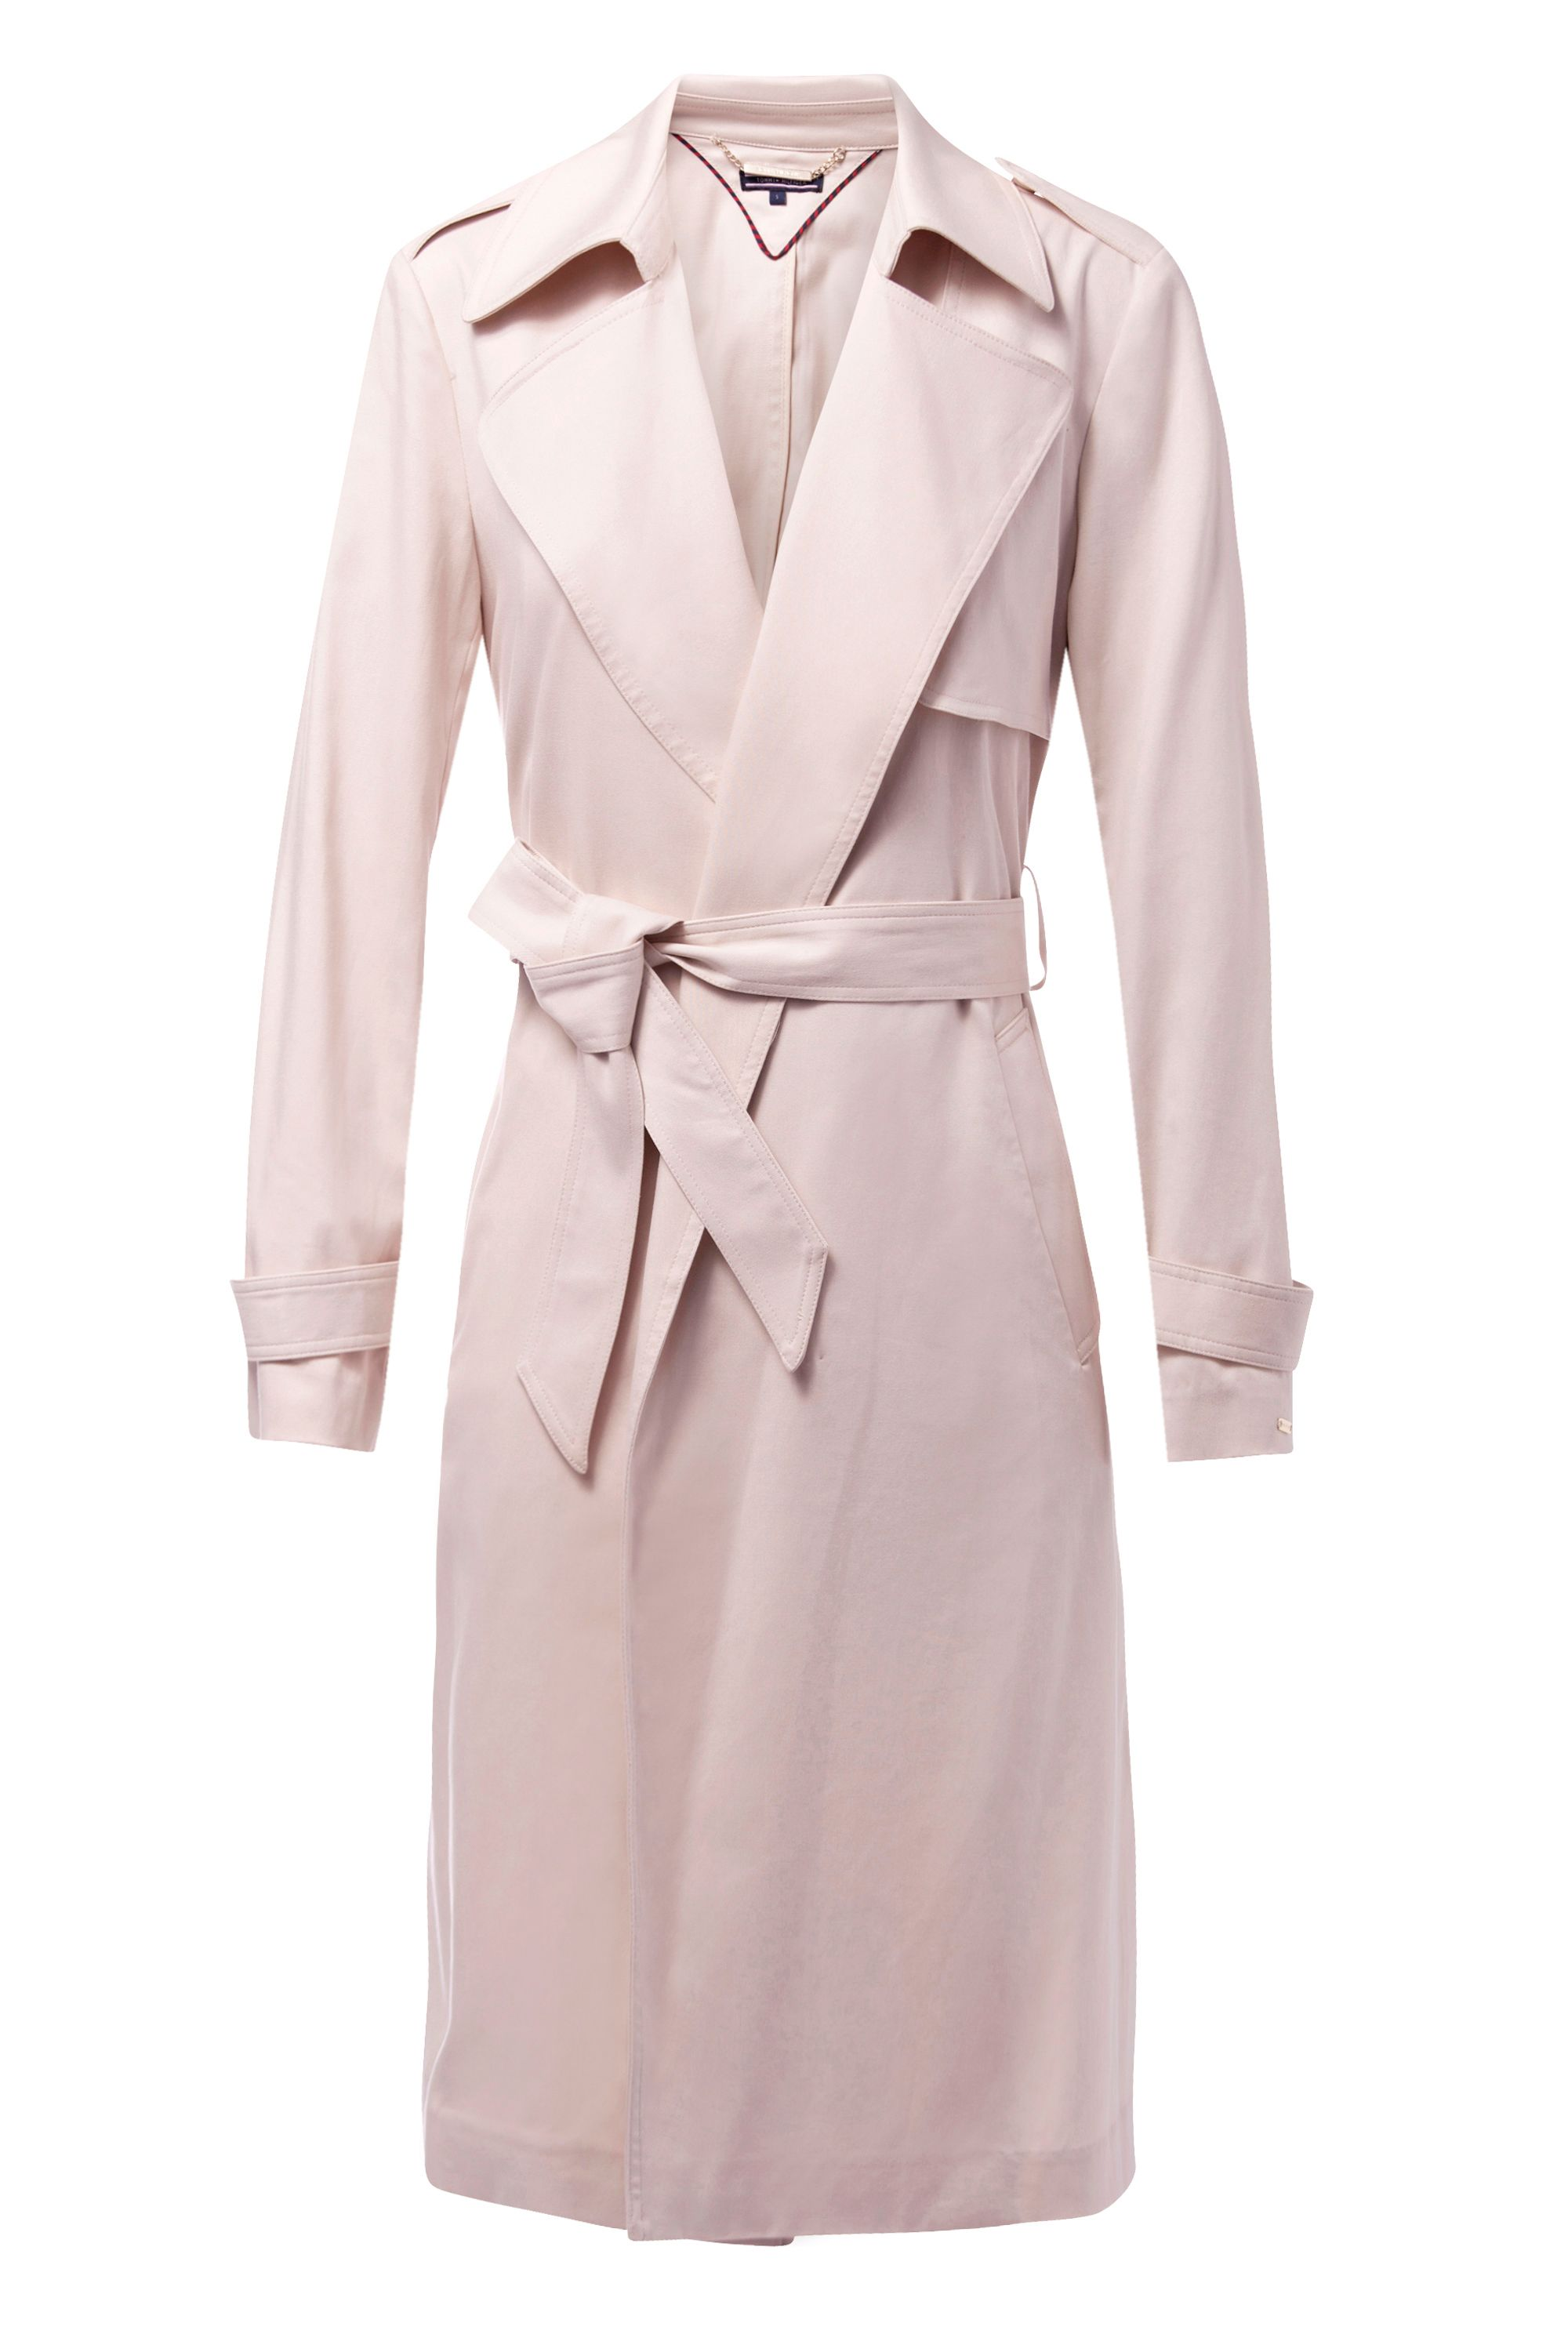 Tommy Hilfiger Beatha Trench Coat, White